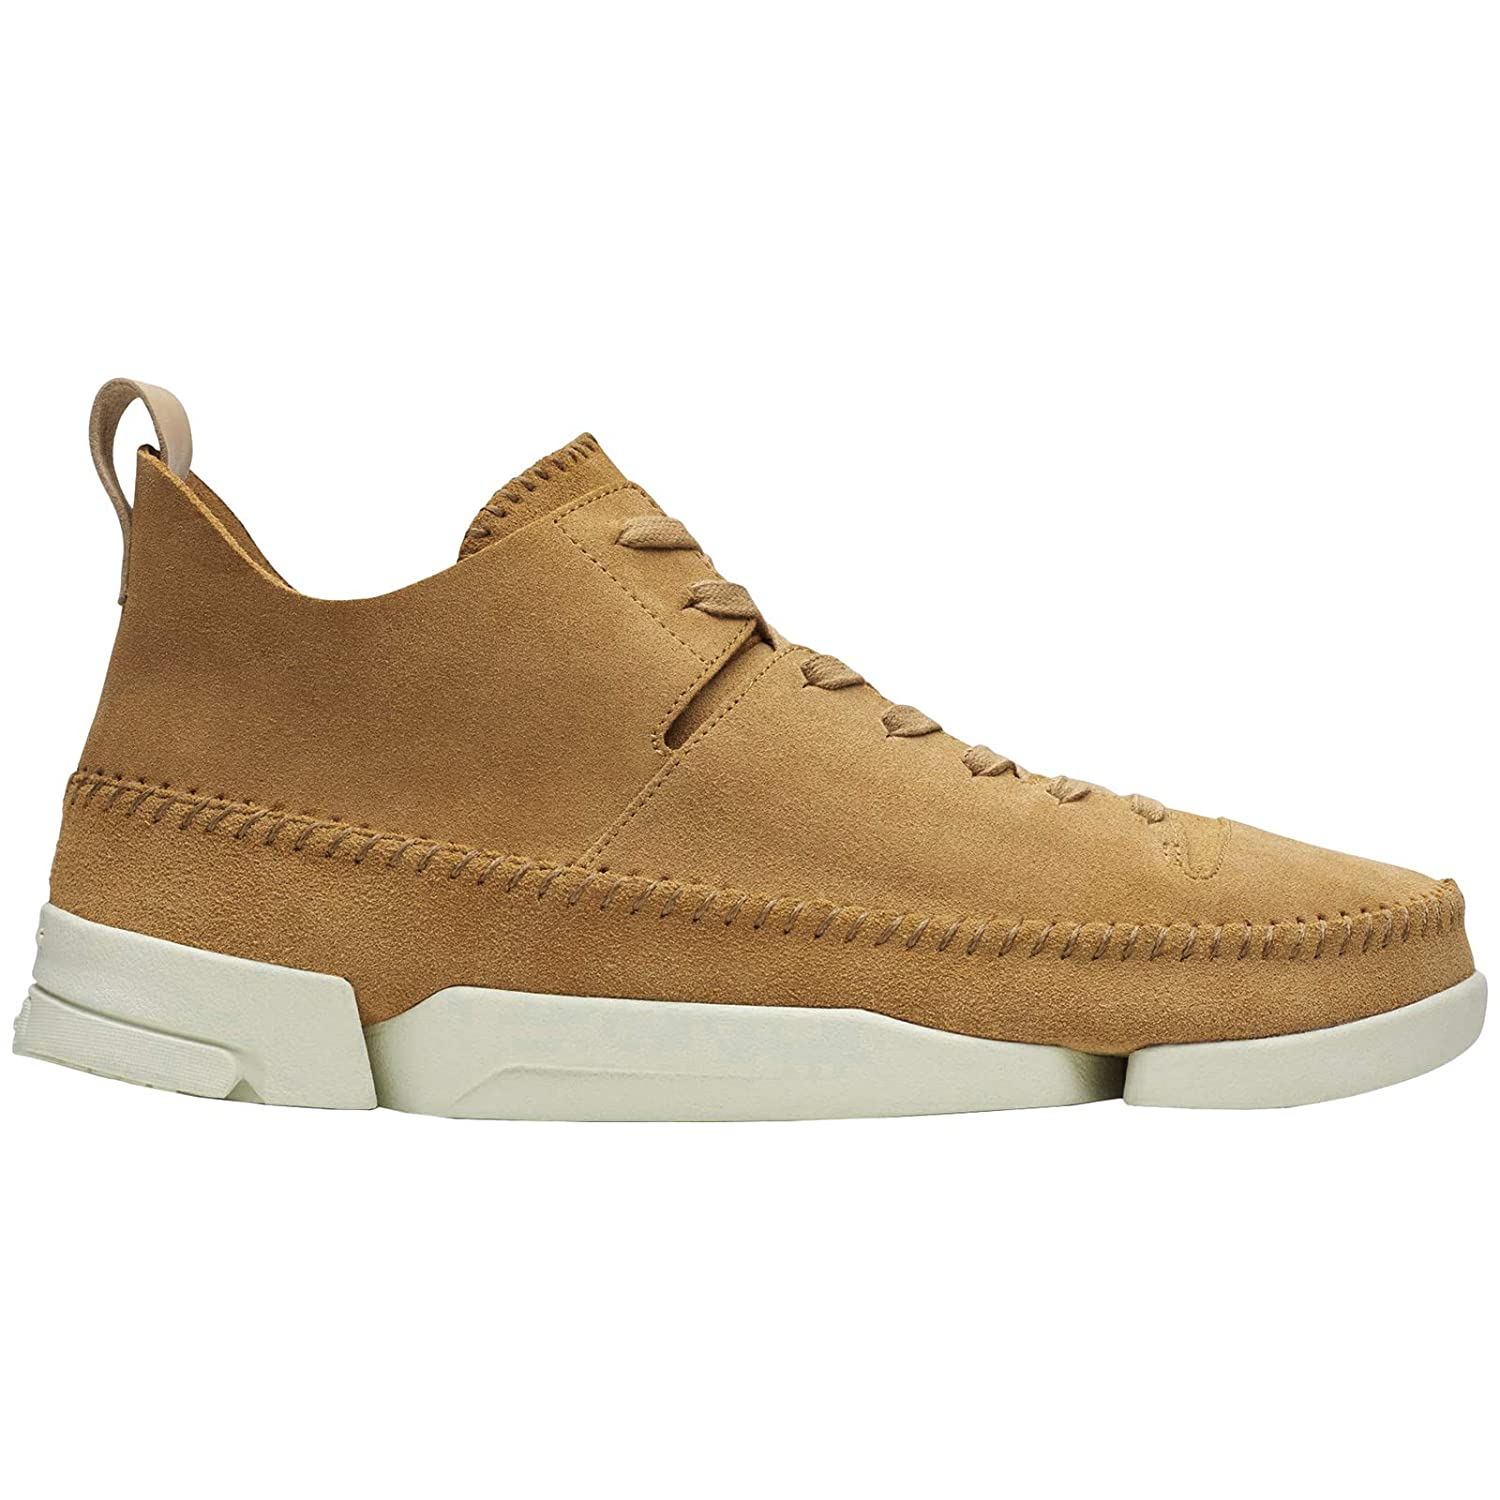 3a9f3bf84800c Clarks Originals Trigenic Flex in Light Tan: Amazon.co.uk: Shoes & Bags